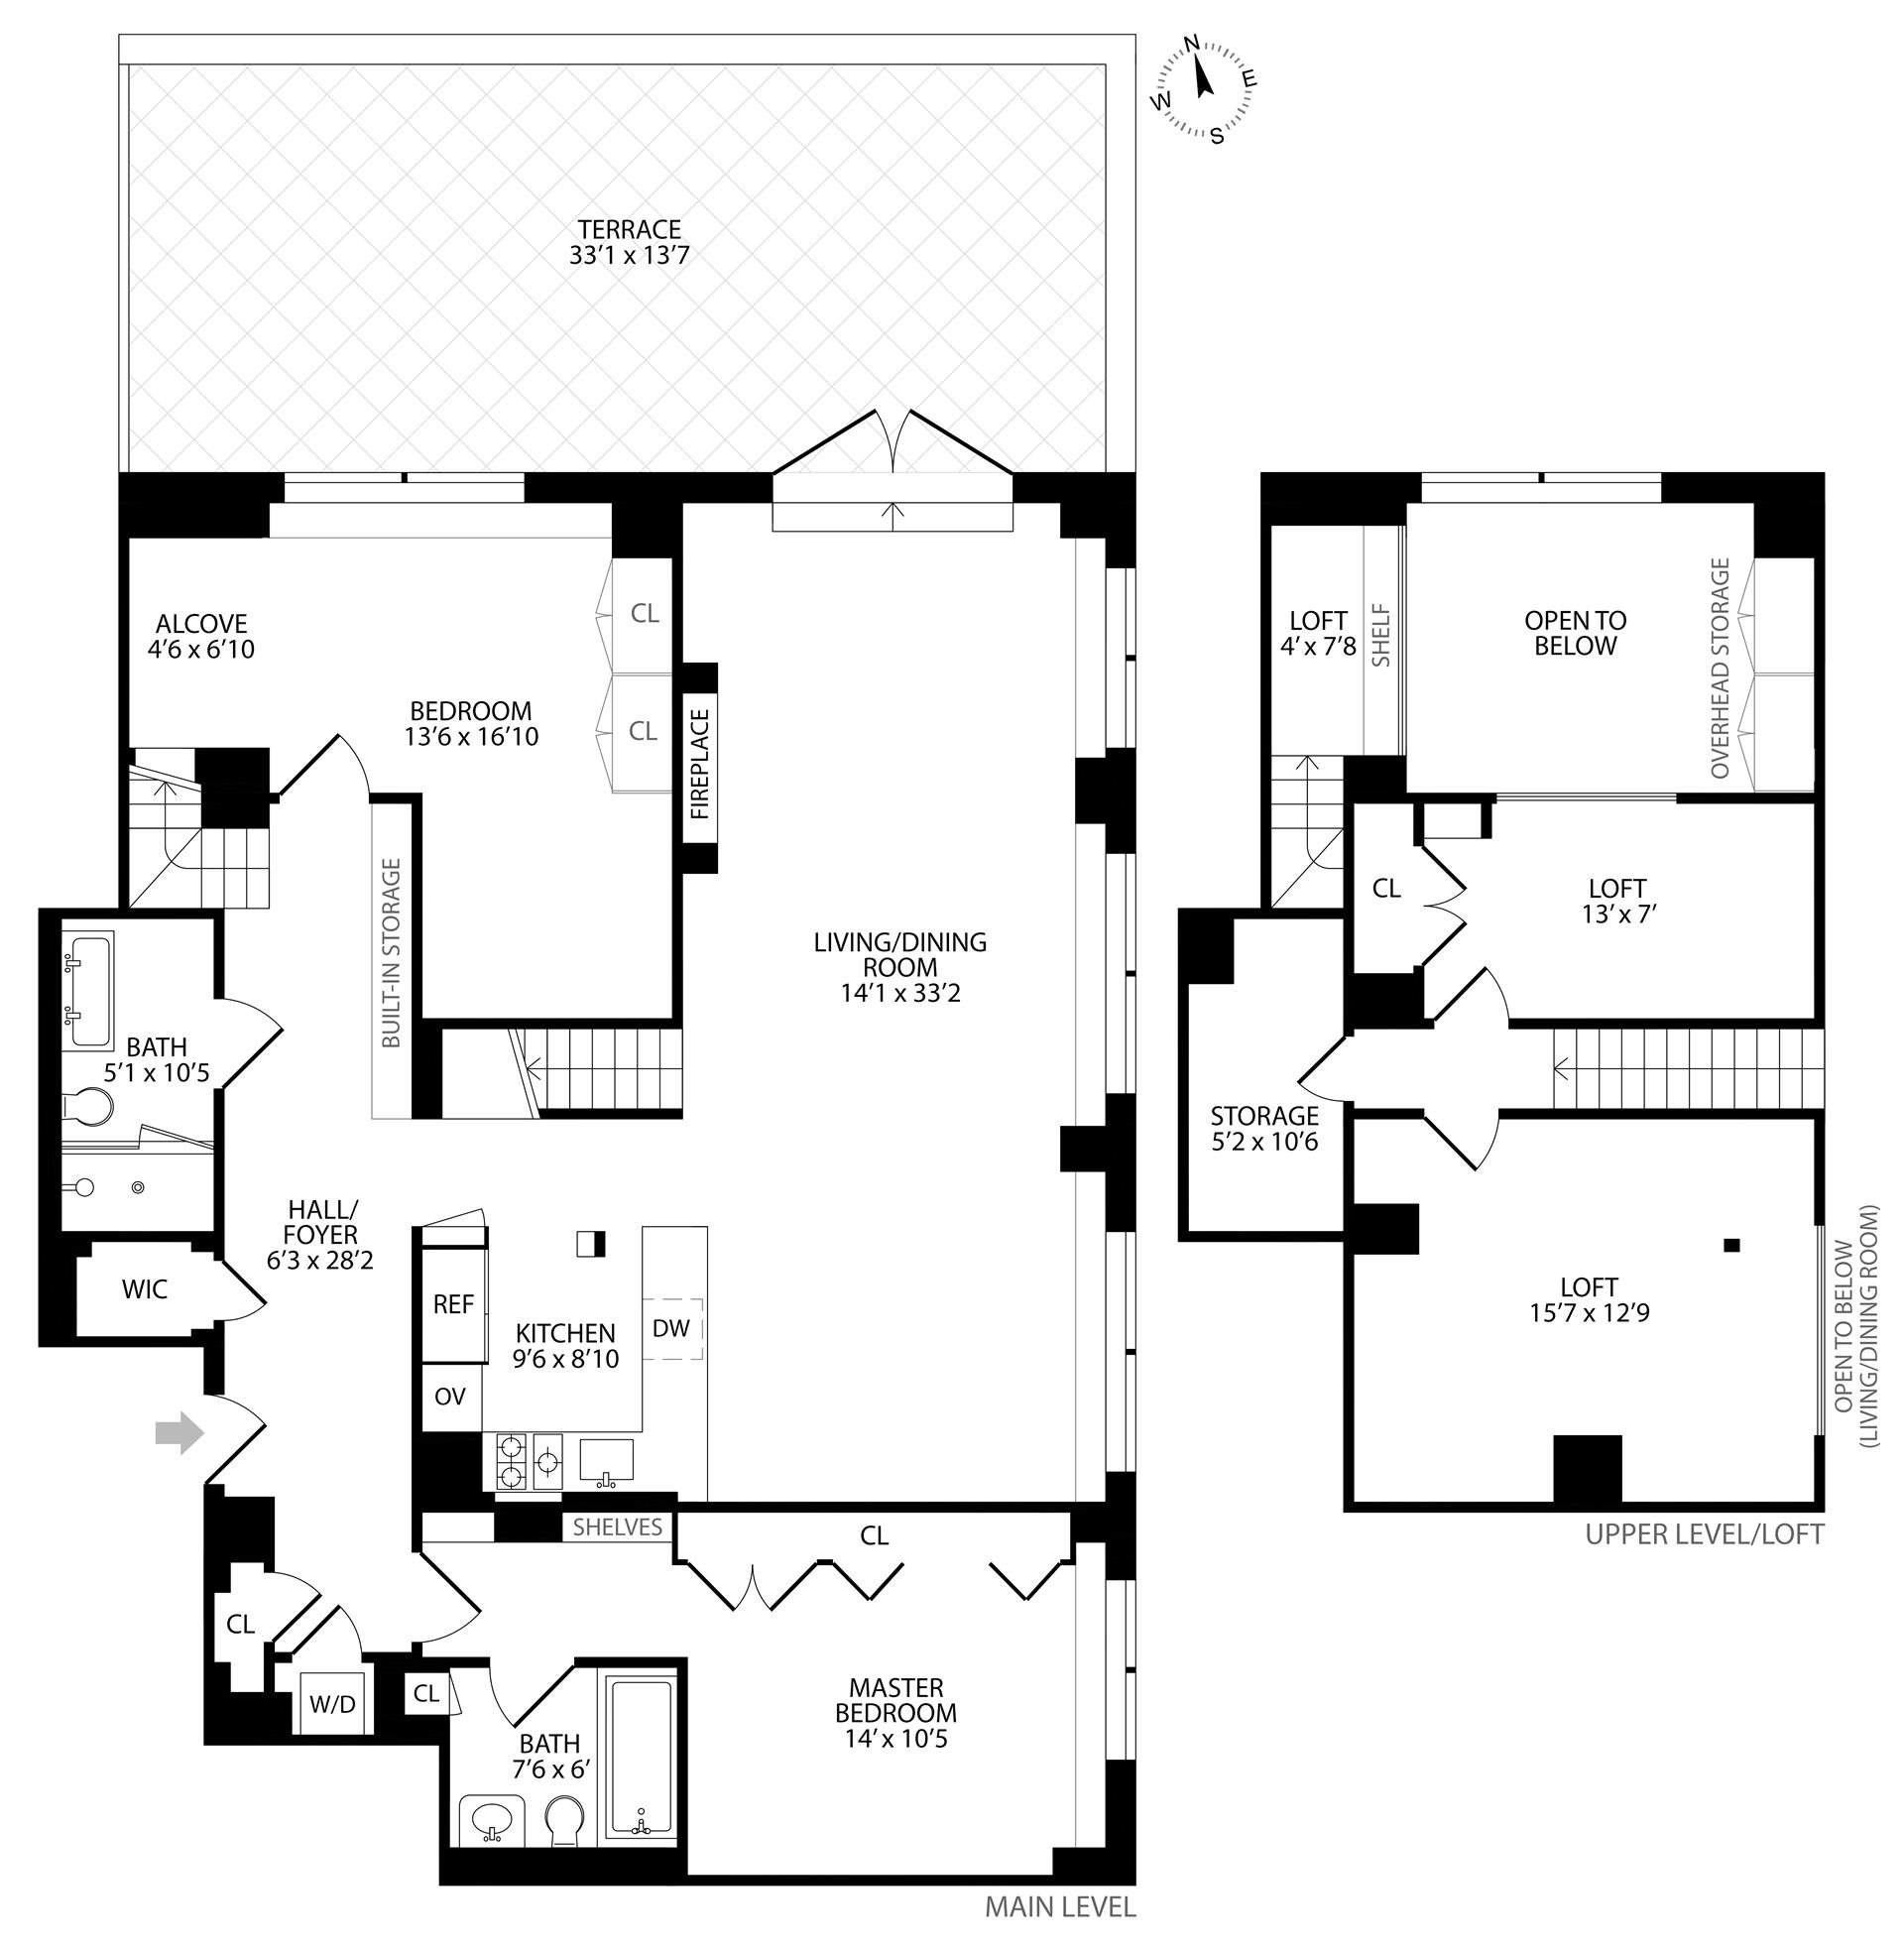 Floor plan of 120 East 87th St, R10A - Carnegie Hill, New York